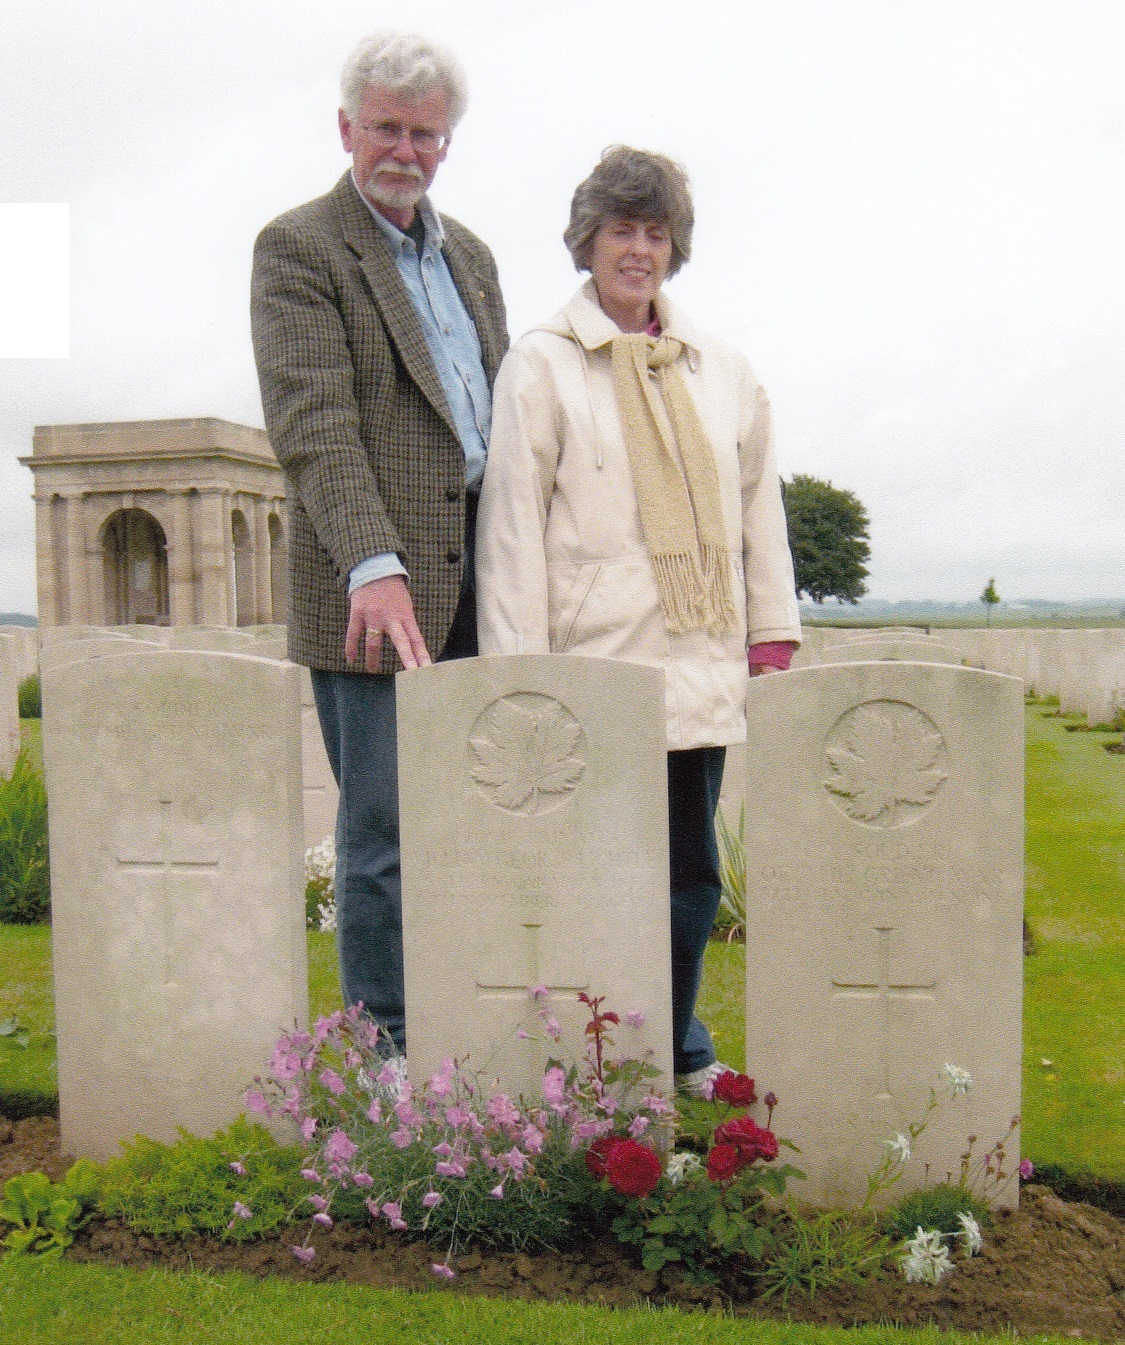 Peter and Barbara at the grave of Wm. George Lightle, France